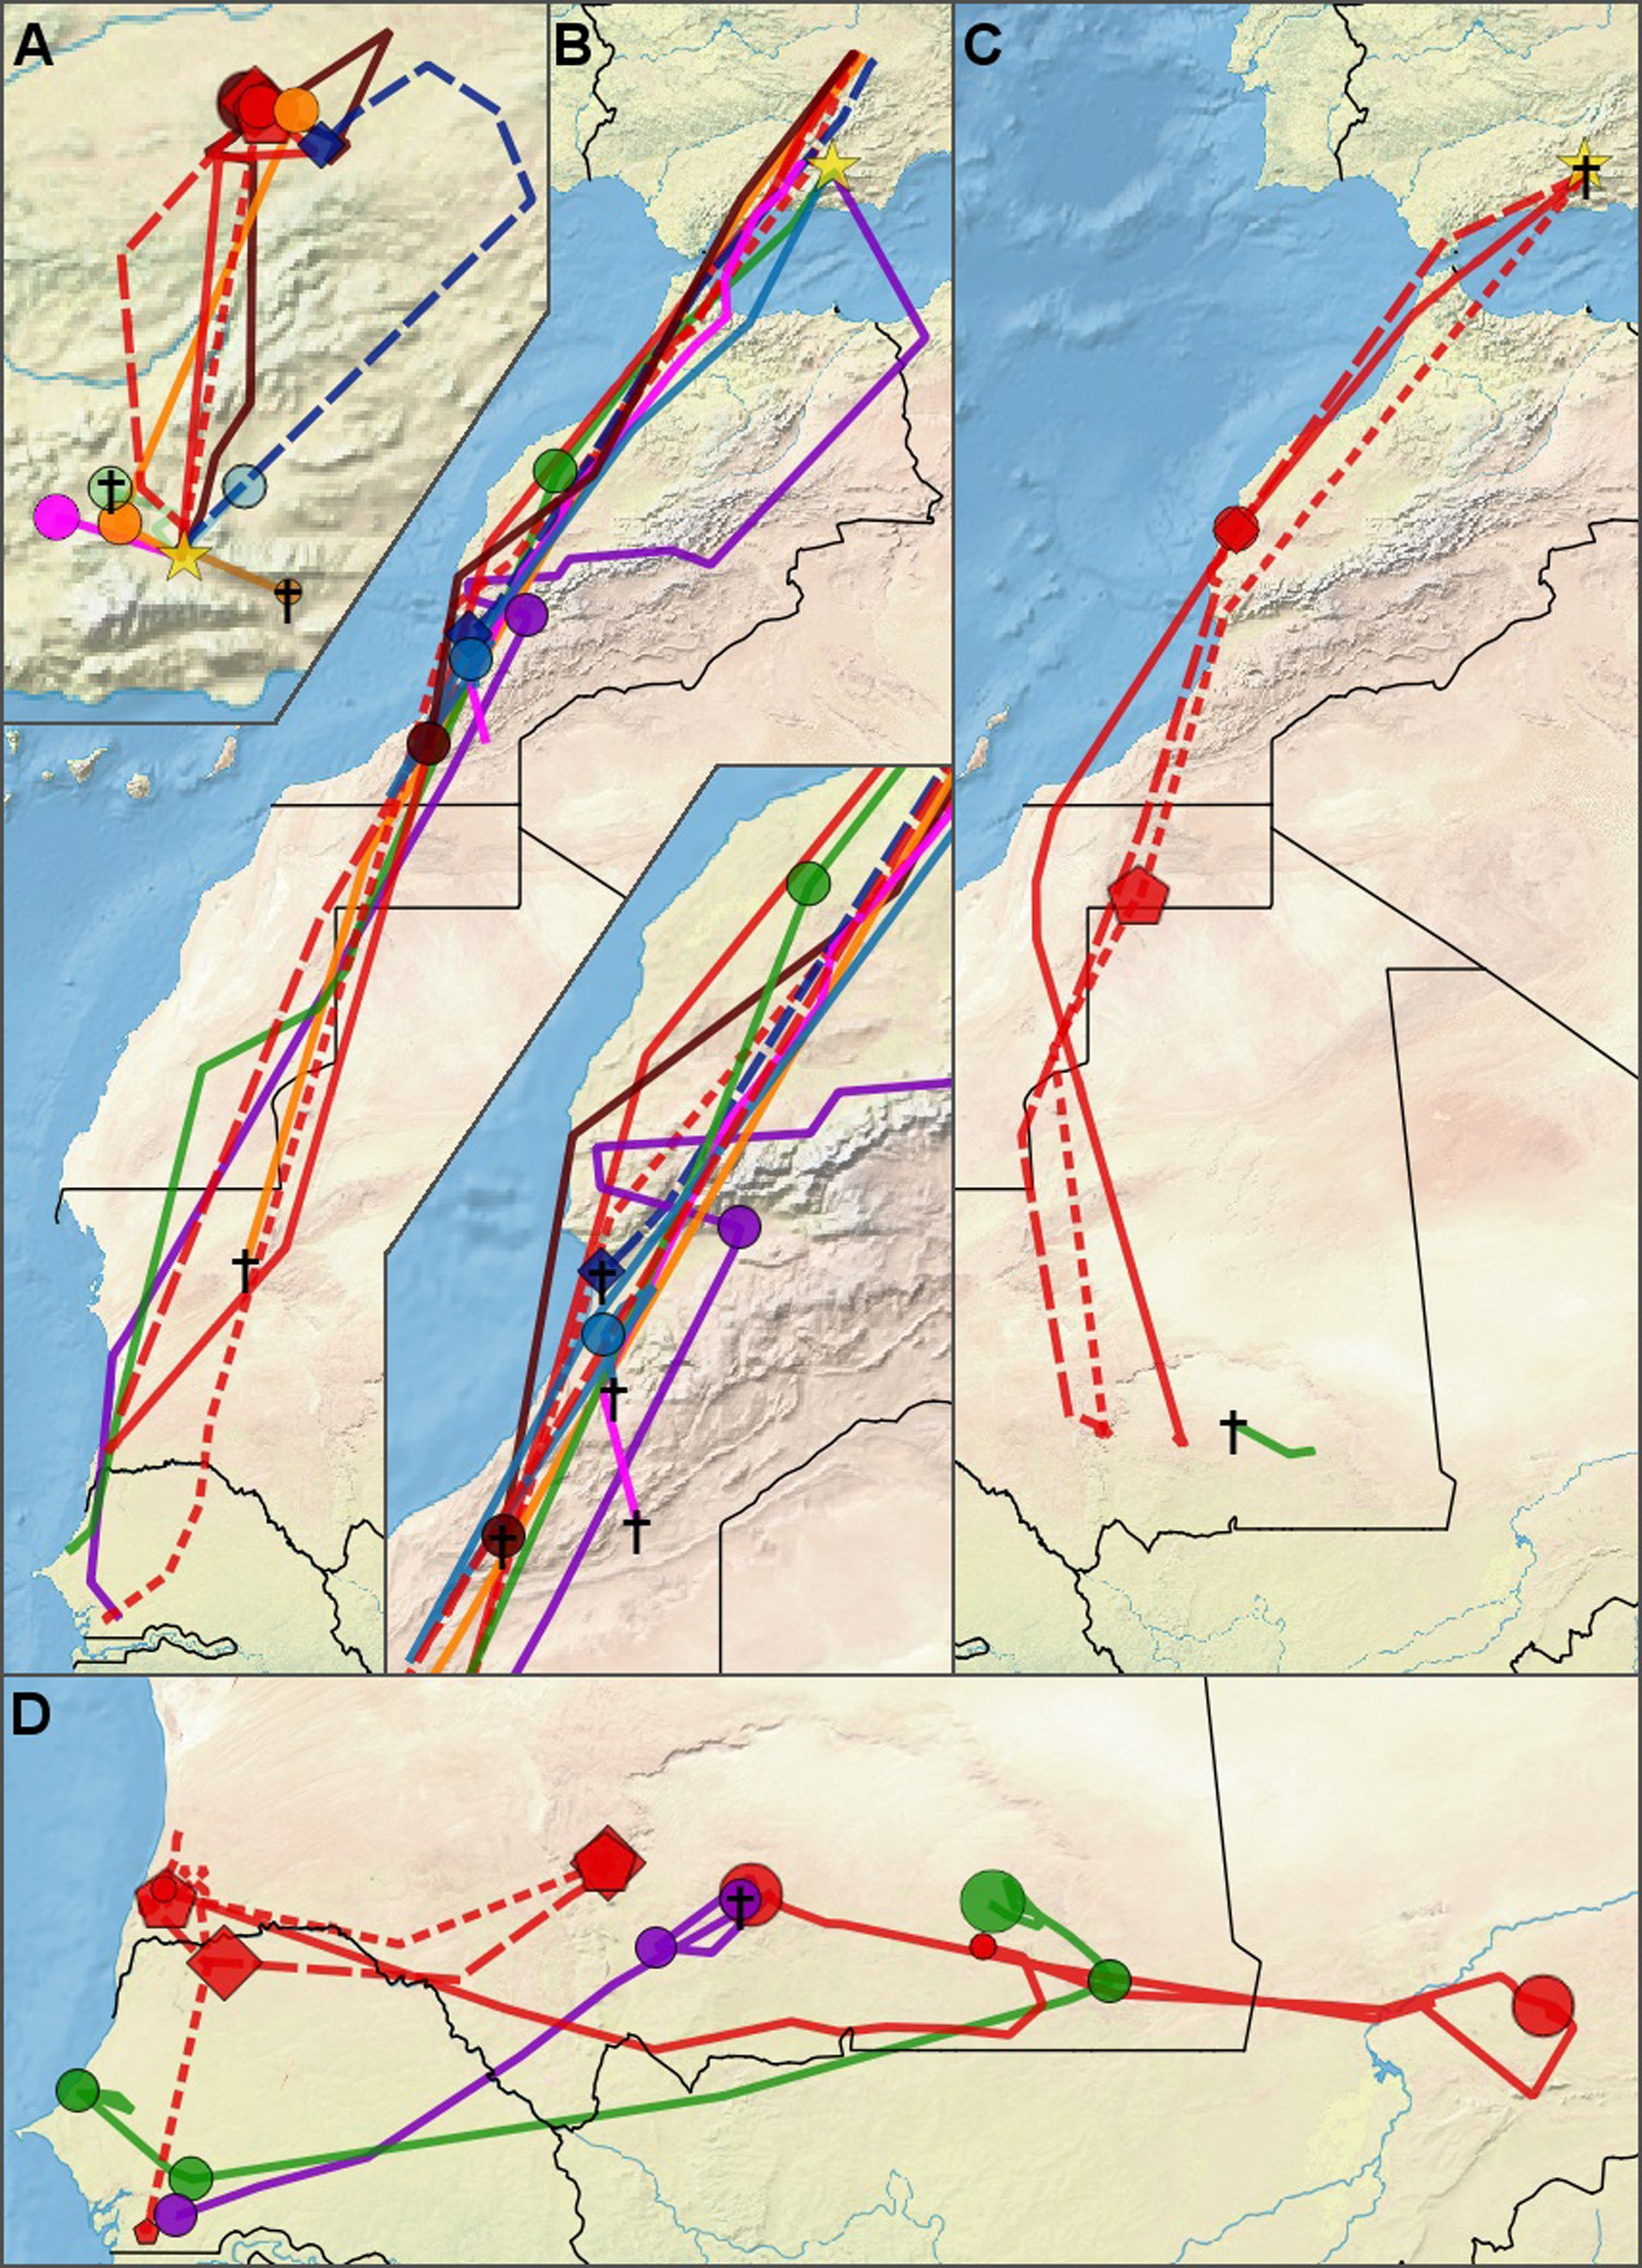 Map of migratory routes of great spotted cuckoos. (A) Pre-migratory movements within Spain. (B) Post-breeding migration (C) Prebreeding migration (D) Wintering area movements. Colors correspond to individual cuckoos, only cuckoos that left the breeding area are included in this map. (Credit University of Groningen)